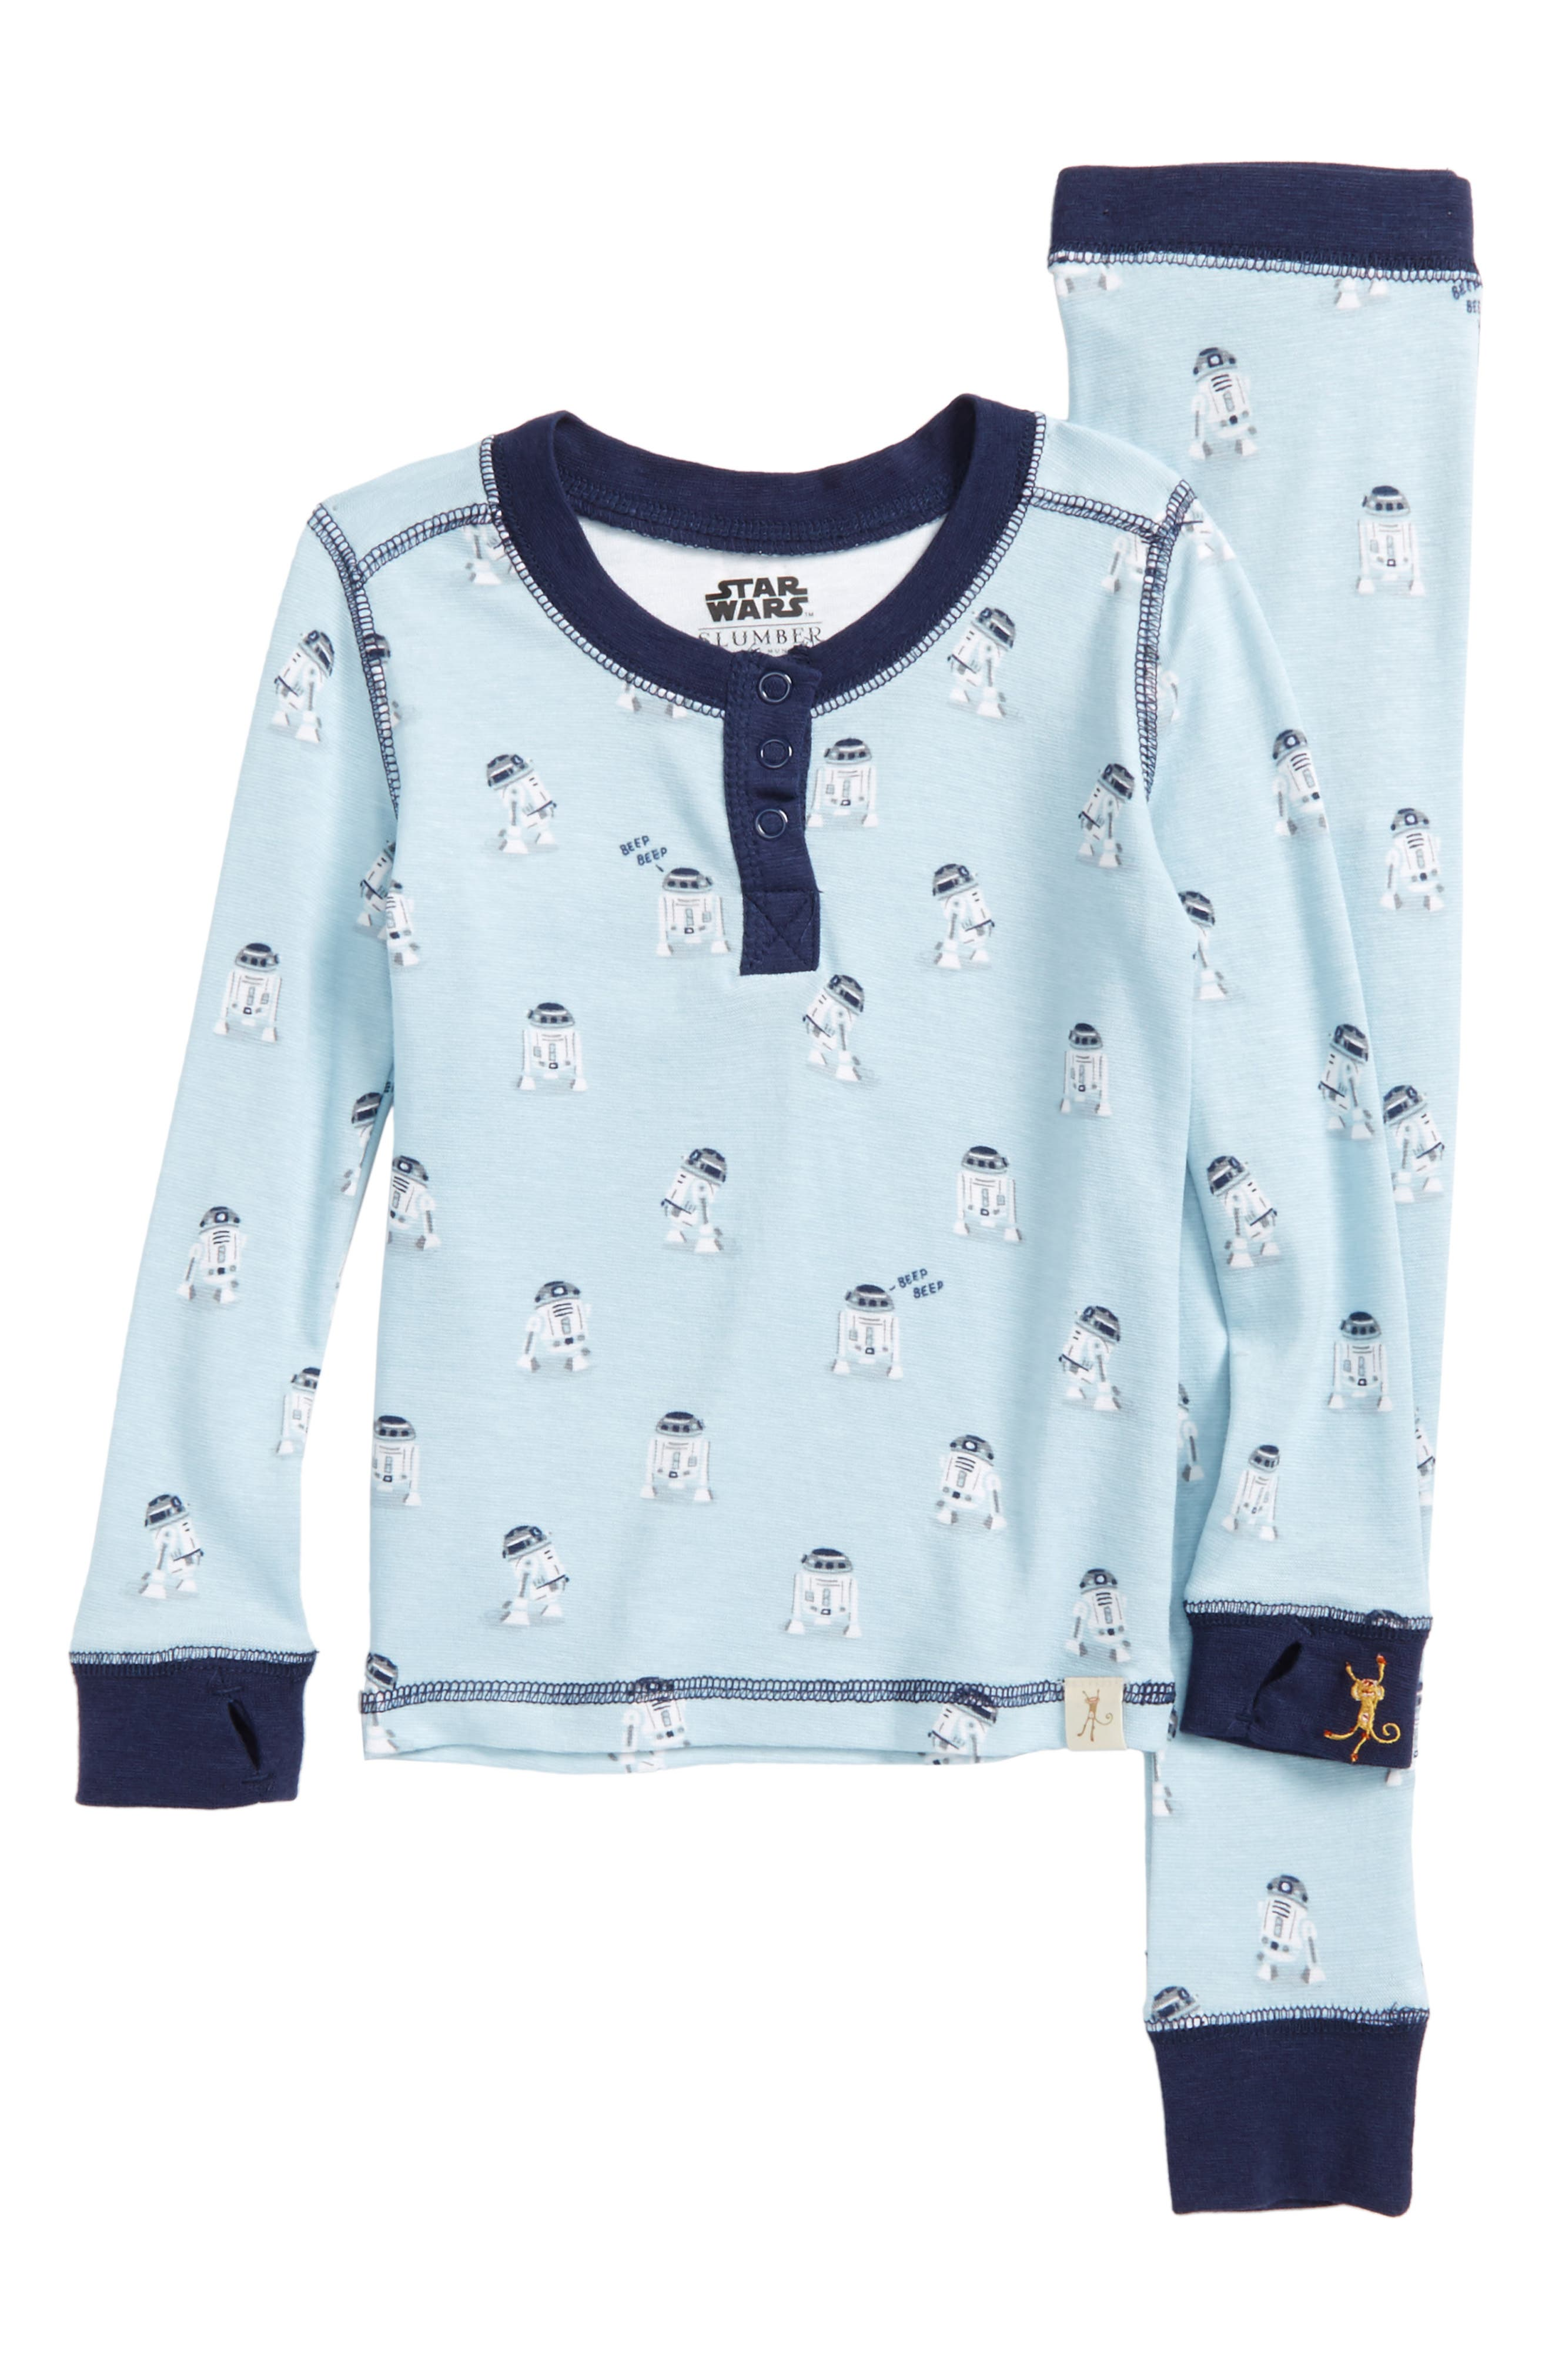 Star Wars<sup>™</sup> - R2-D2 Fitted Two-Piece Pajamas,                         Main,                         color, 048